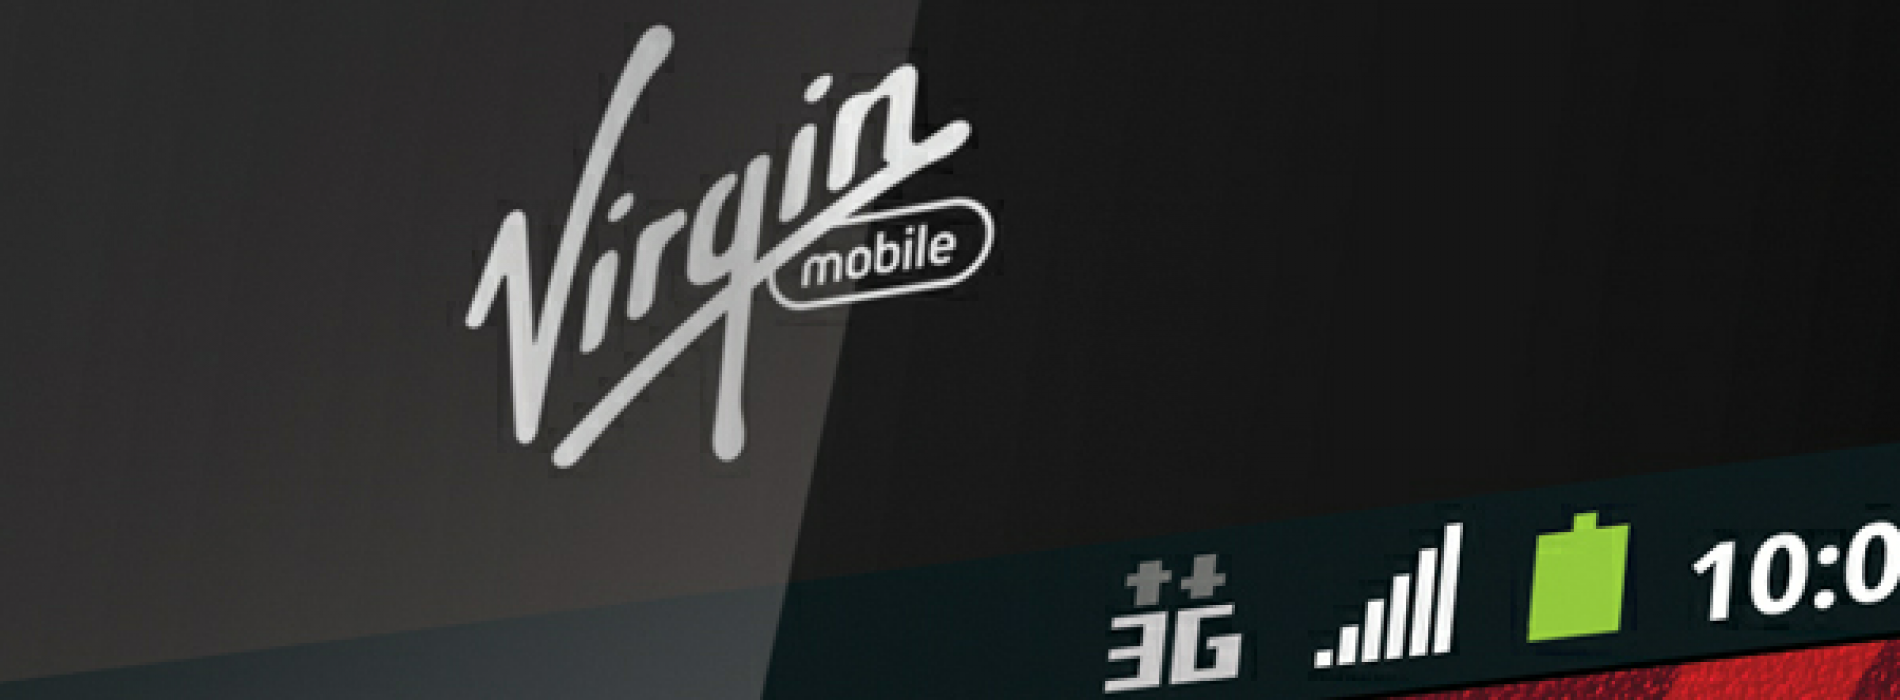 Virgin Mobile USA now offering $149 LG Optimus Elite